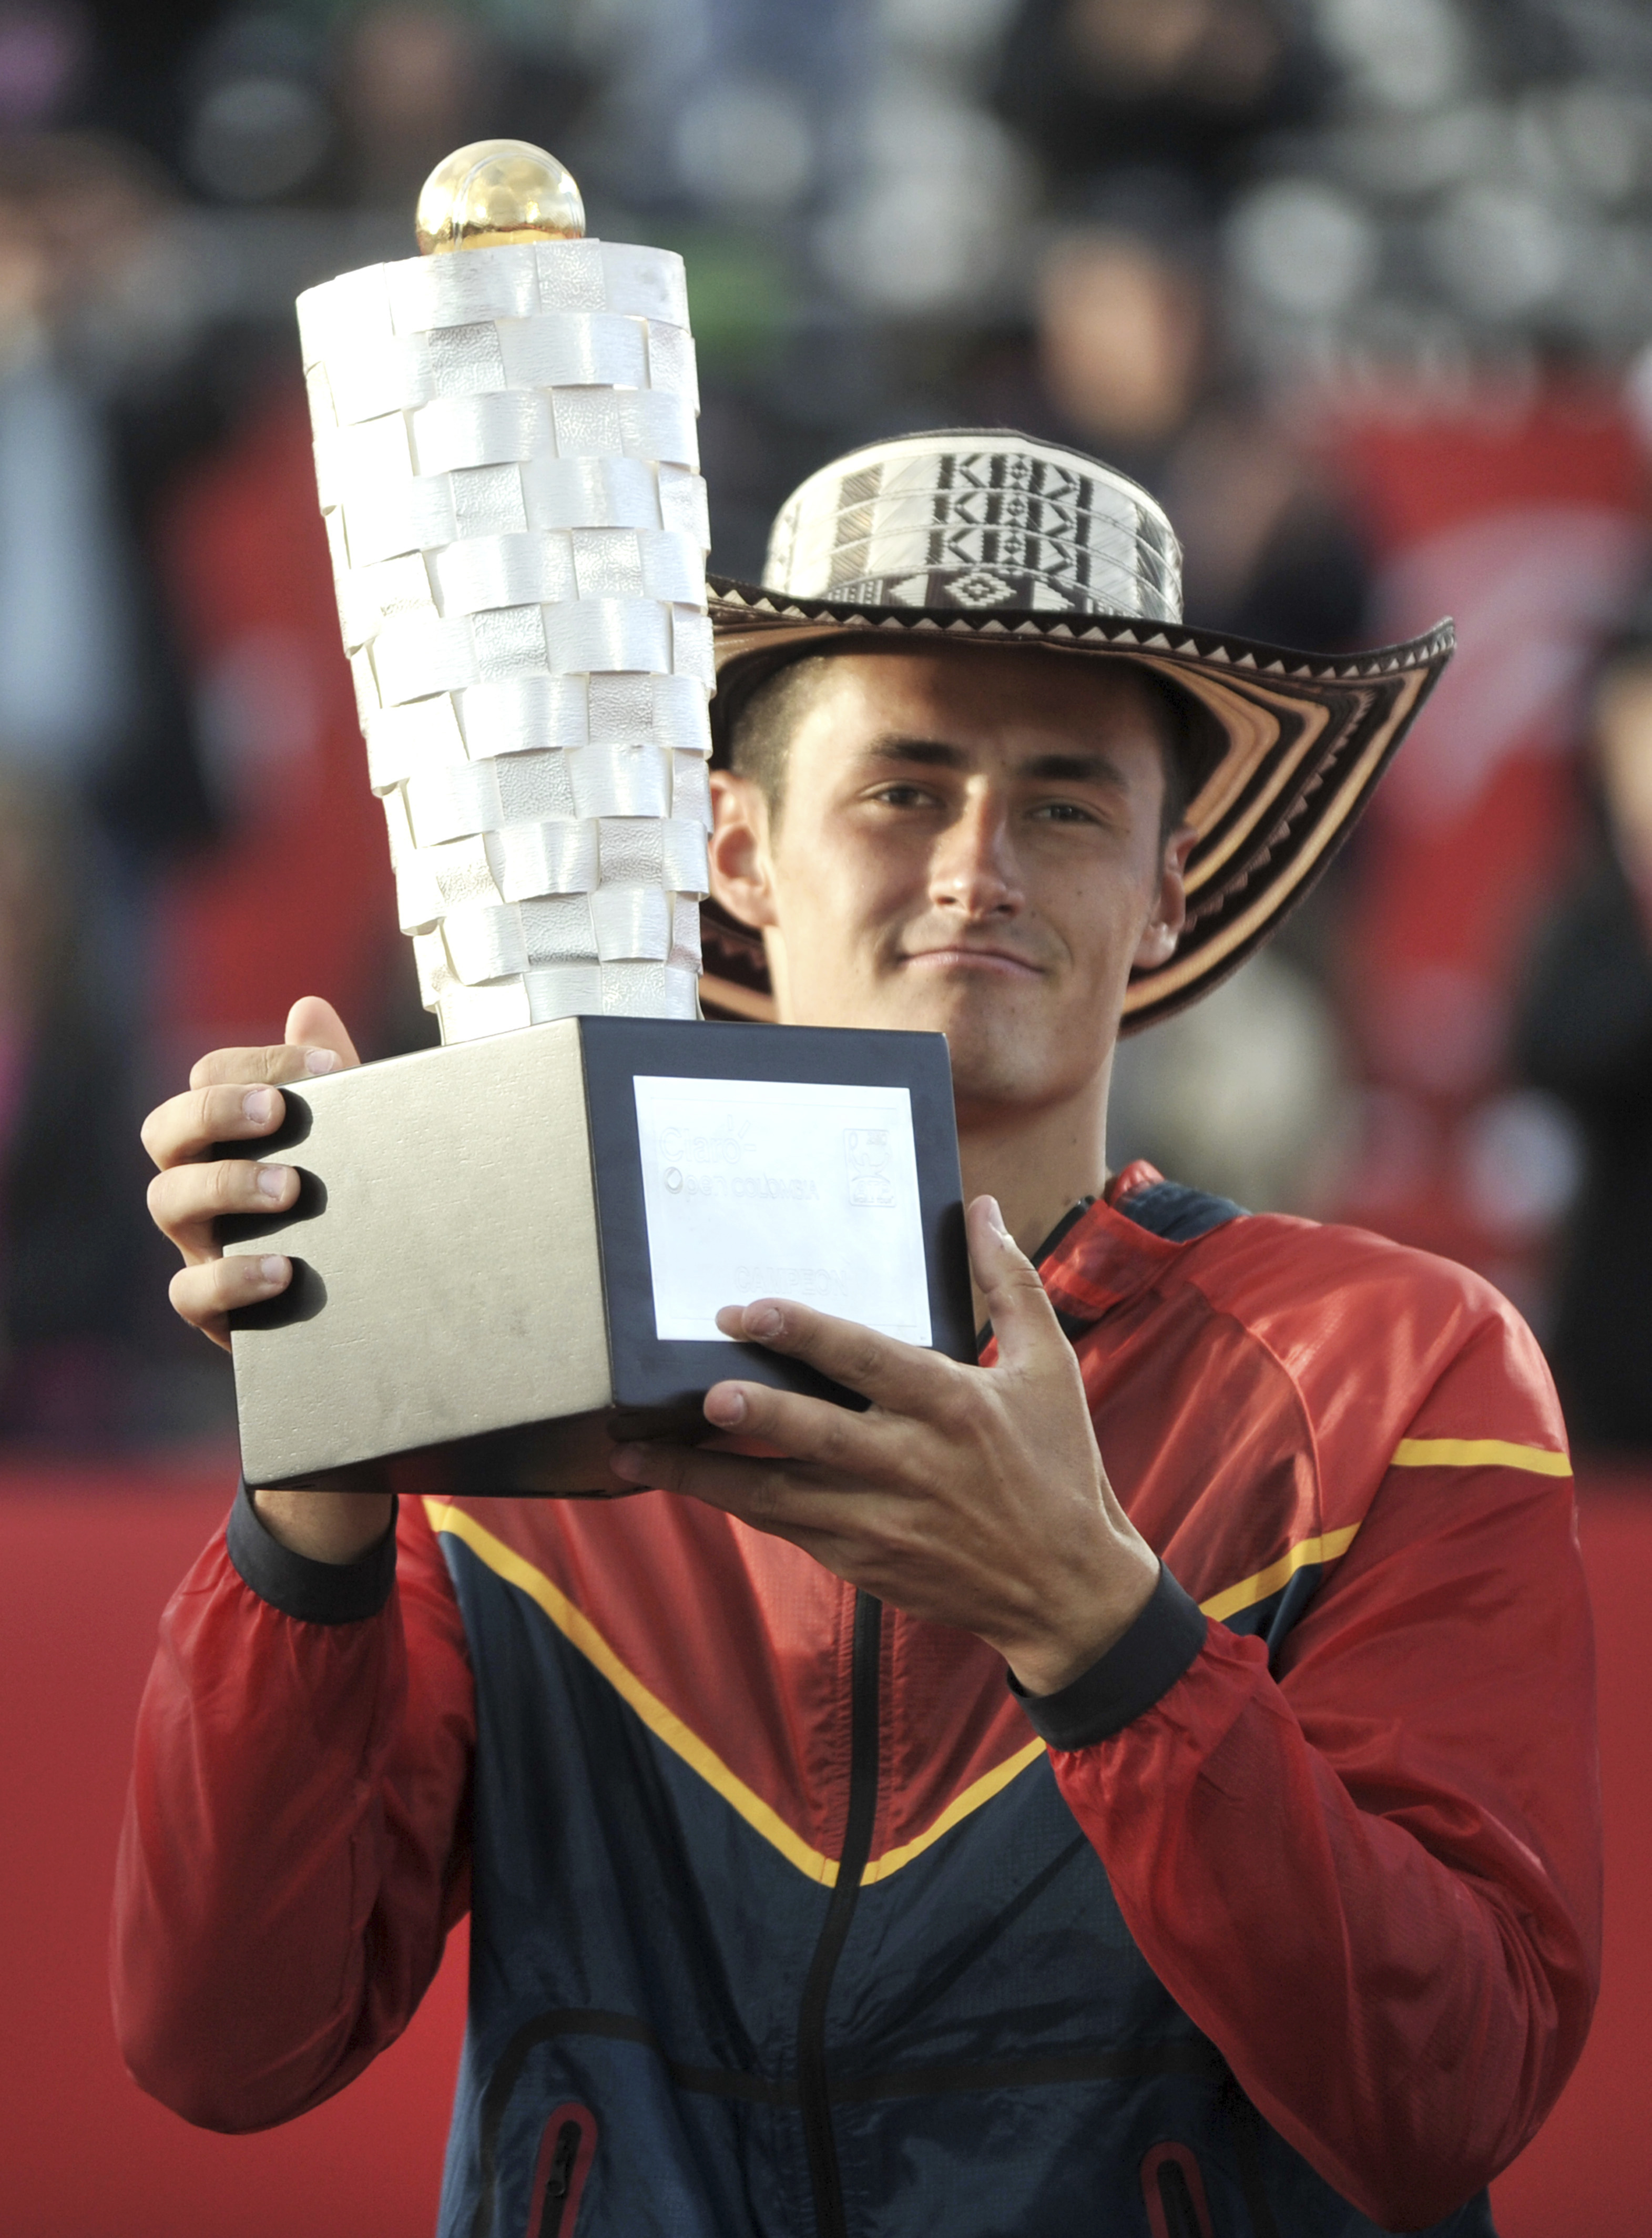 Tomic gets a hat and a trophy after winning the Copa Claro Open.